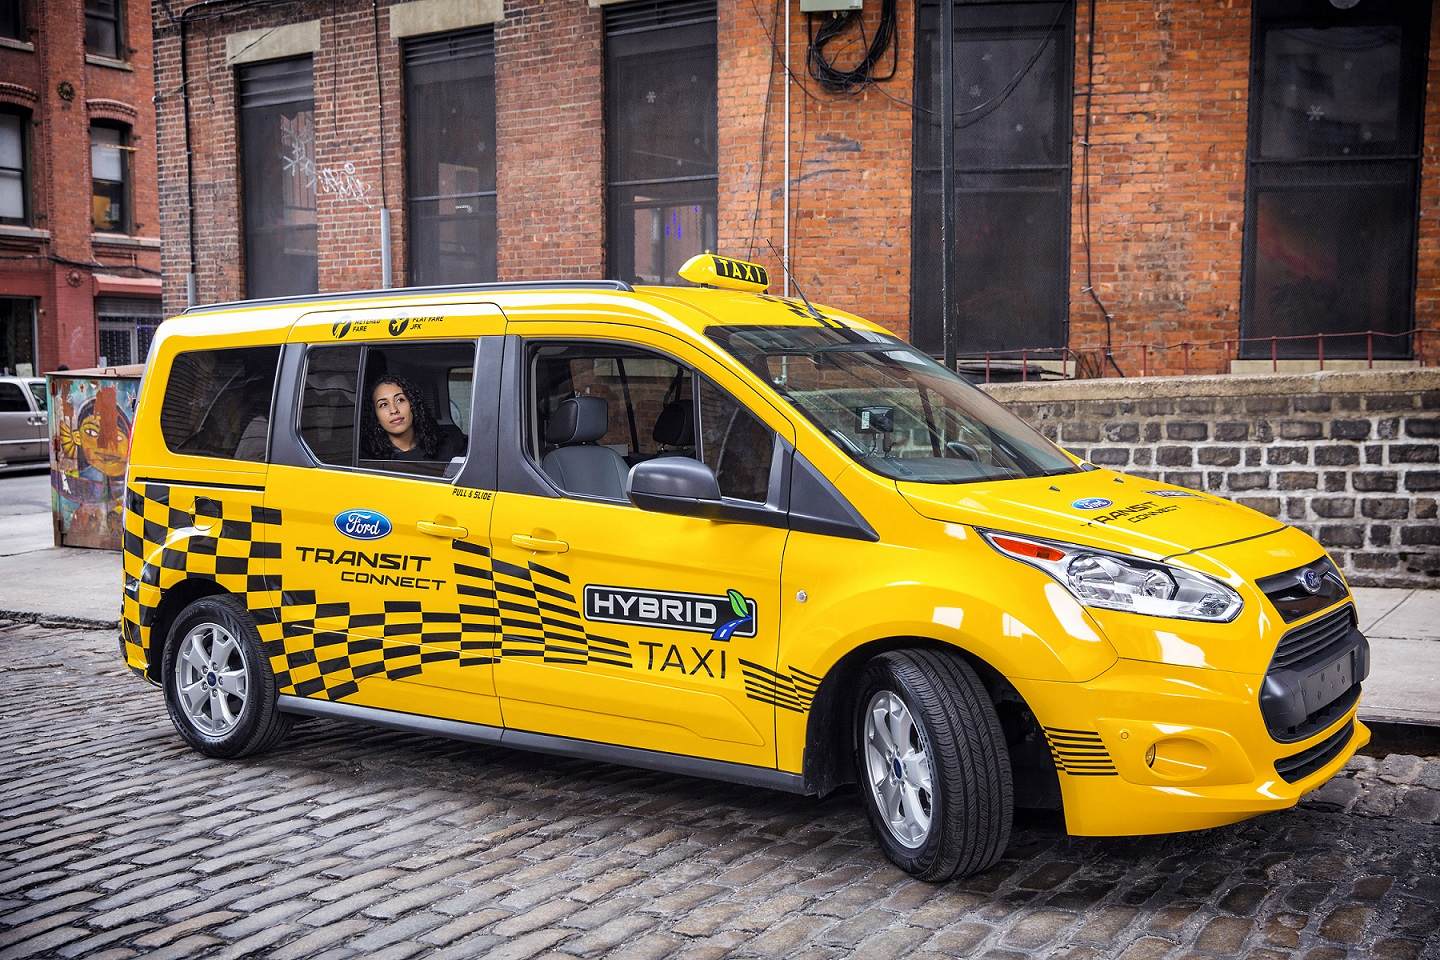 A passenger takes a ride in the new Ford Transit Connect hybrid taxi prototype. Ford will start testing a fleet of 20 Transit Connect hybrid taxi and van prototypes in major cities across the U.S. this year to help businesses reduce their operating costs while still providing plenty of passenger and cargo space.